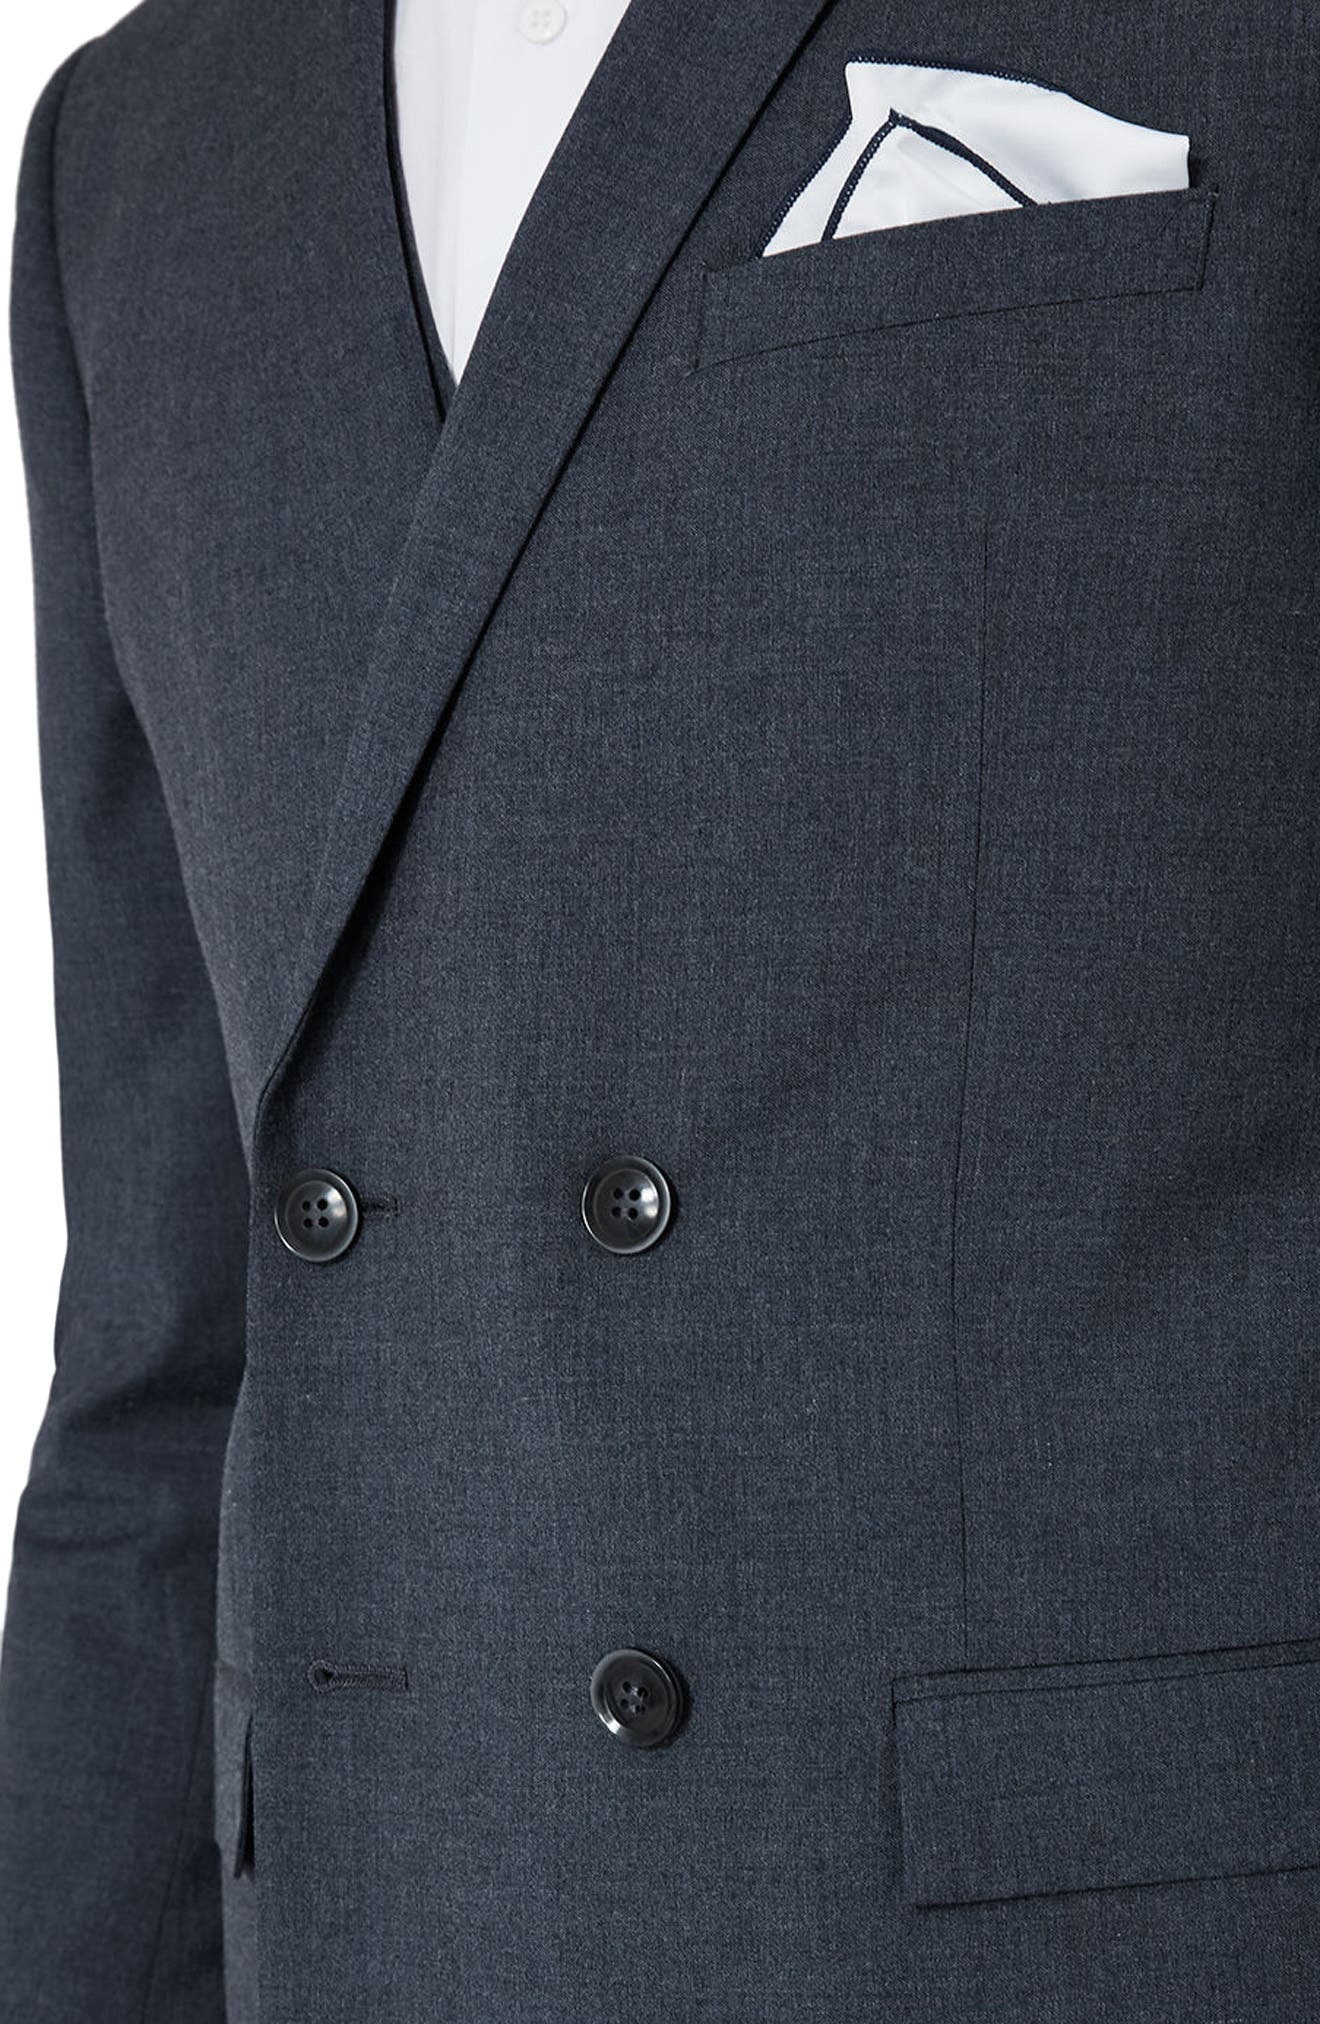 Alternate Image 4  - Topman Skinny Fit Double Breasted Suit Jacket